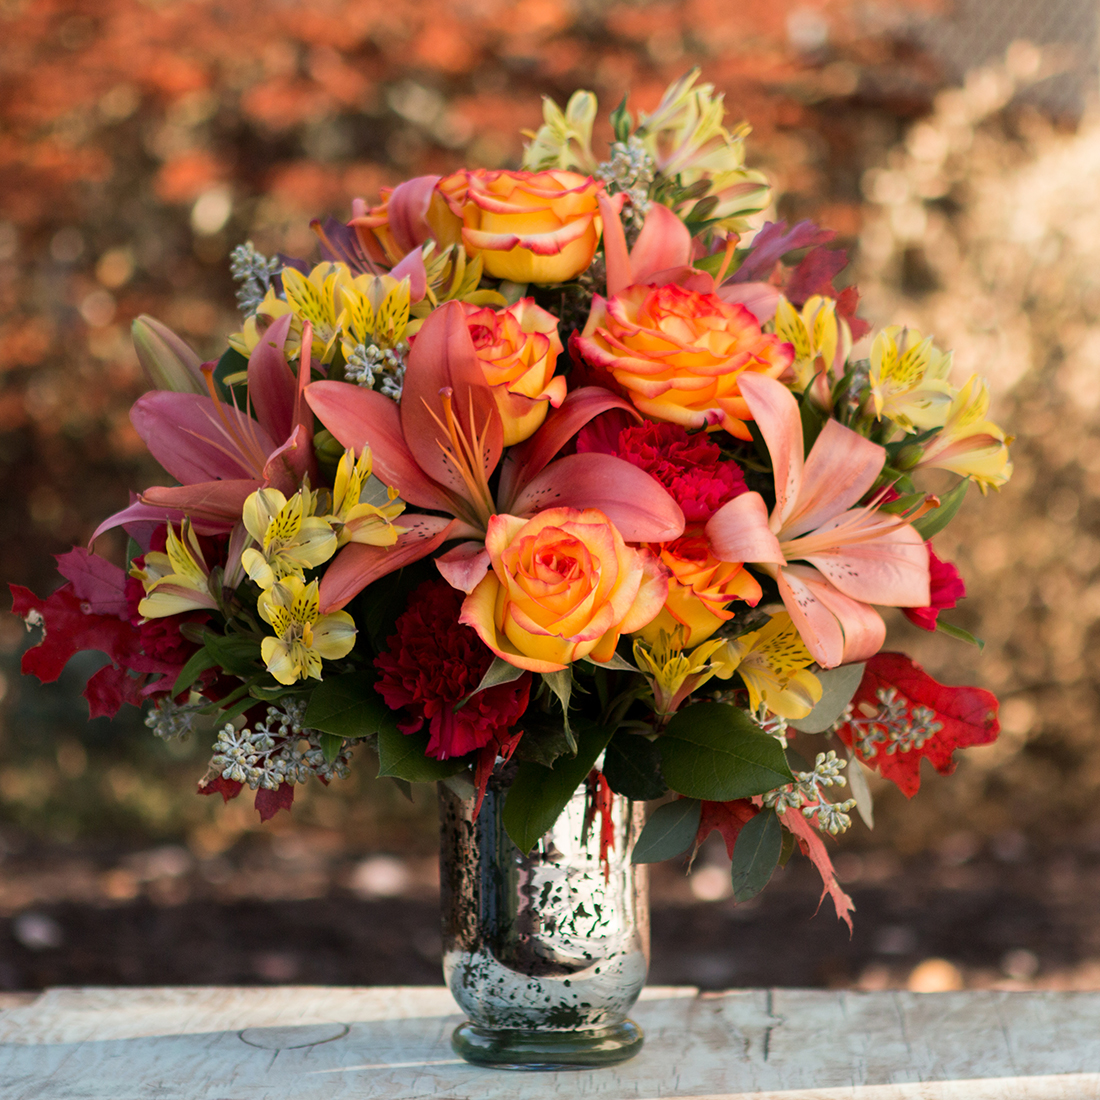 Oranges roses, pink lilies, and greenery in silver vase with fall foliage in the background